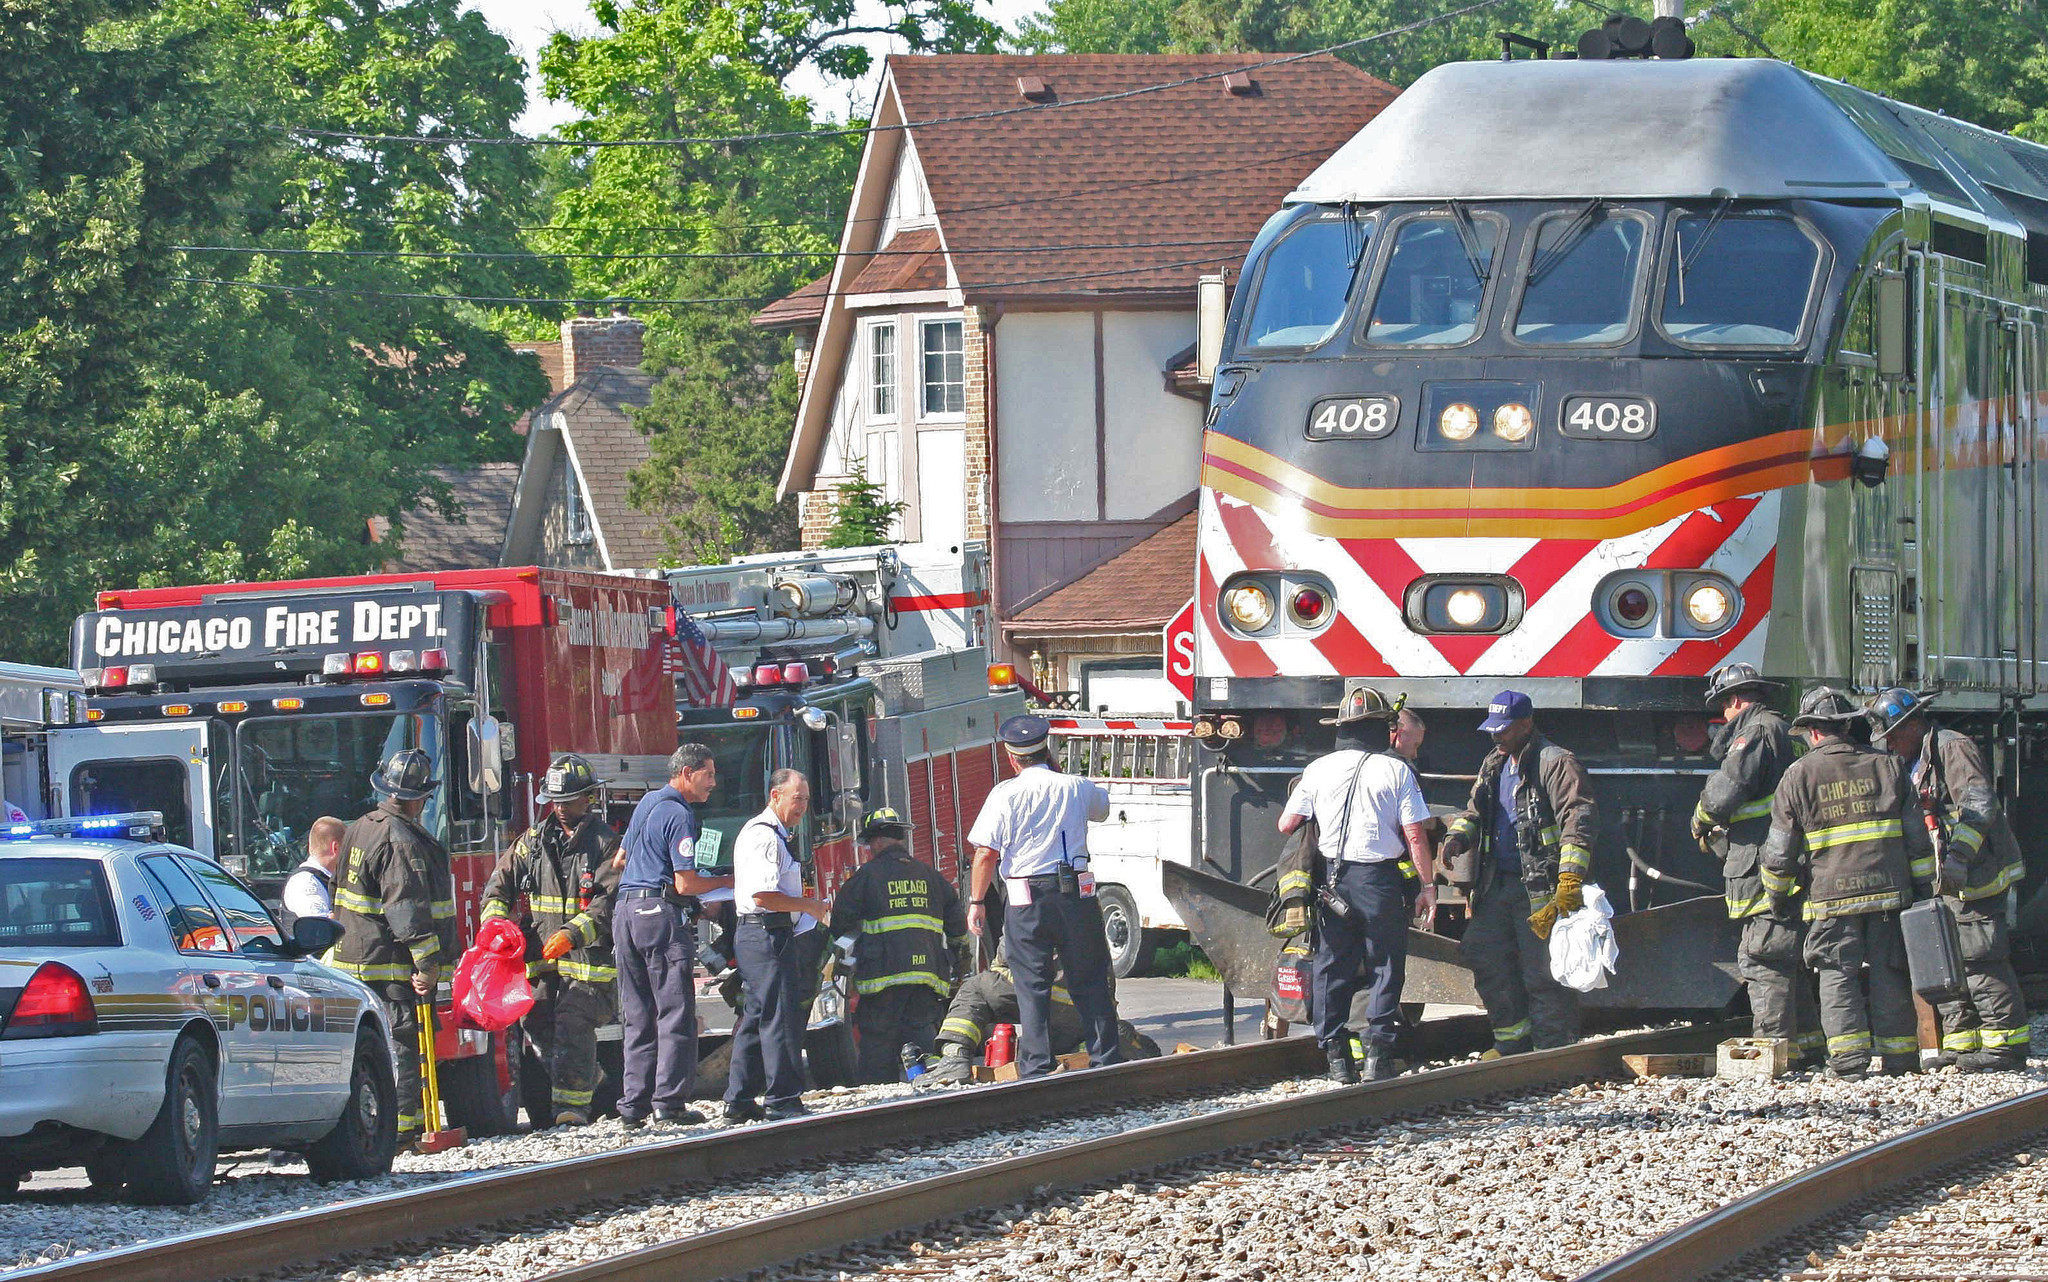 metra train strikes pedestrian on rock island line - chicago tribune